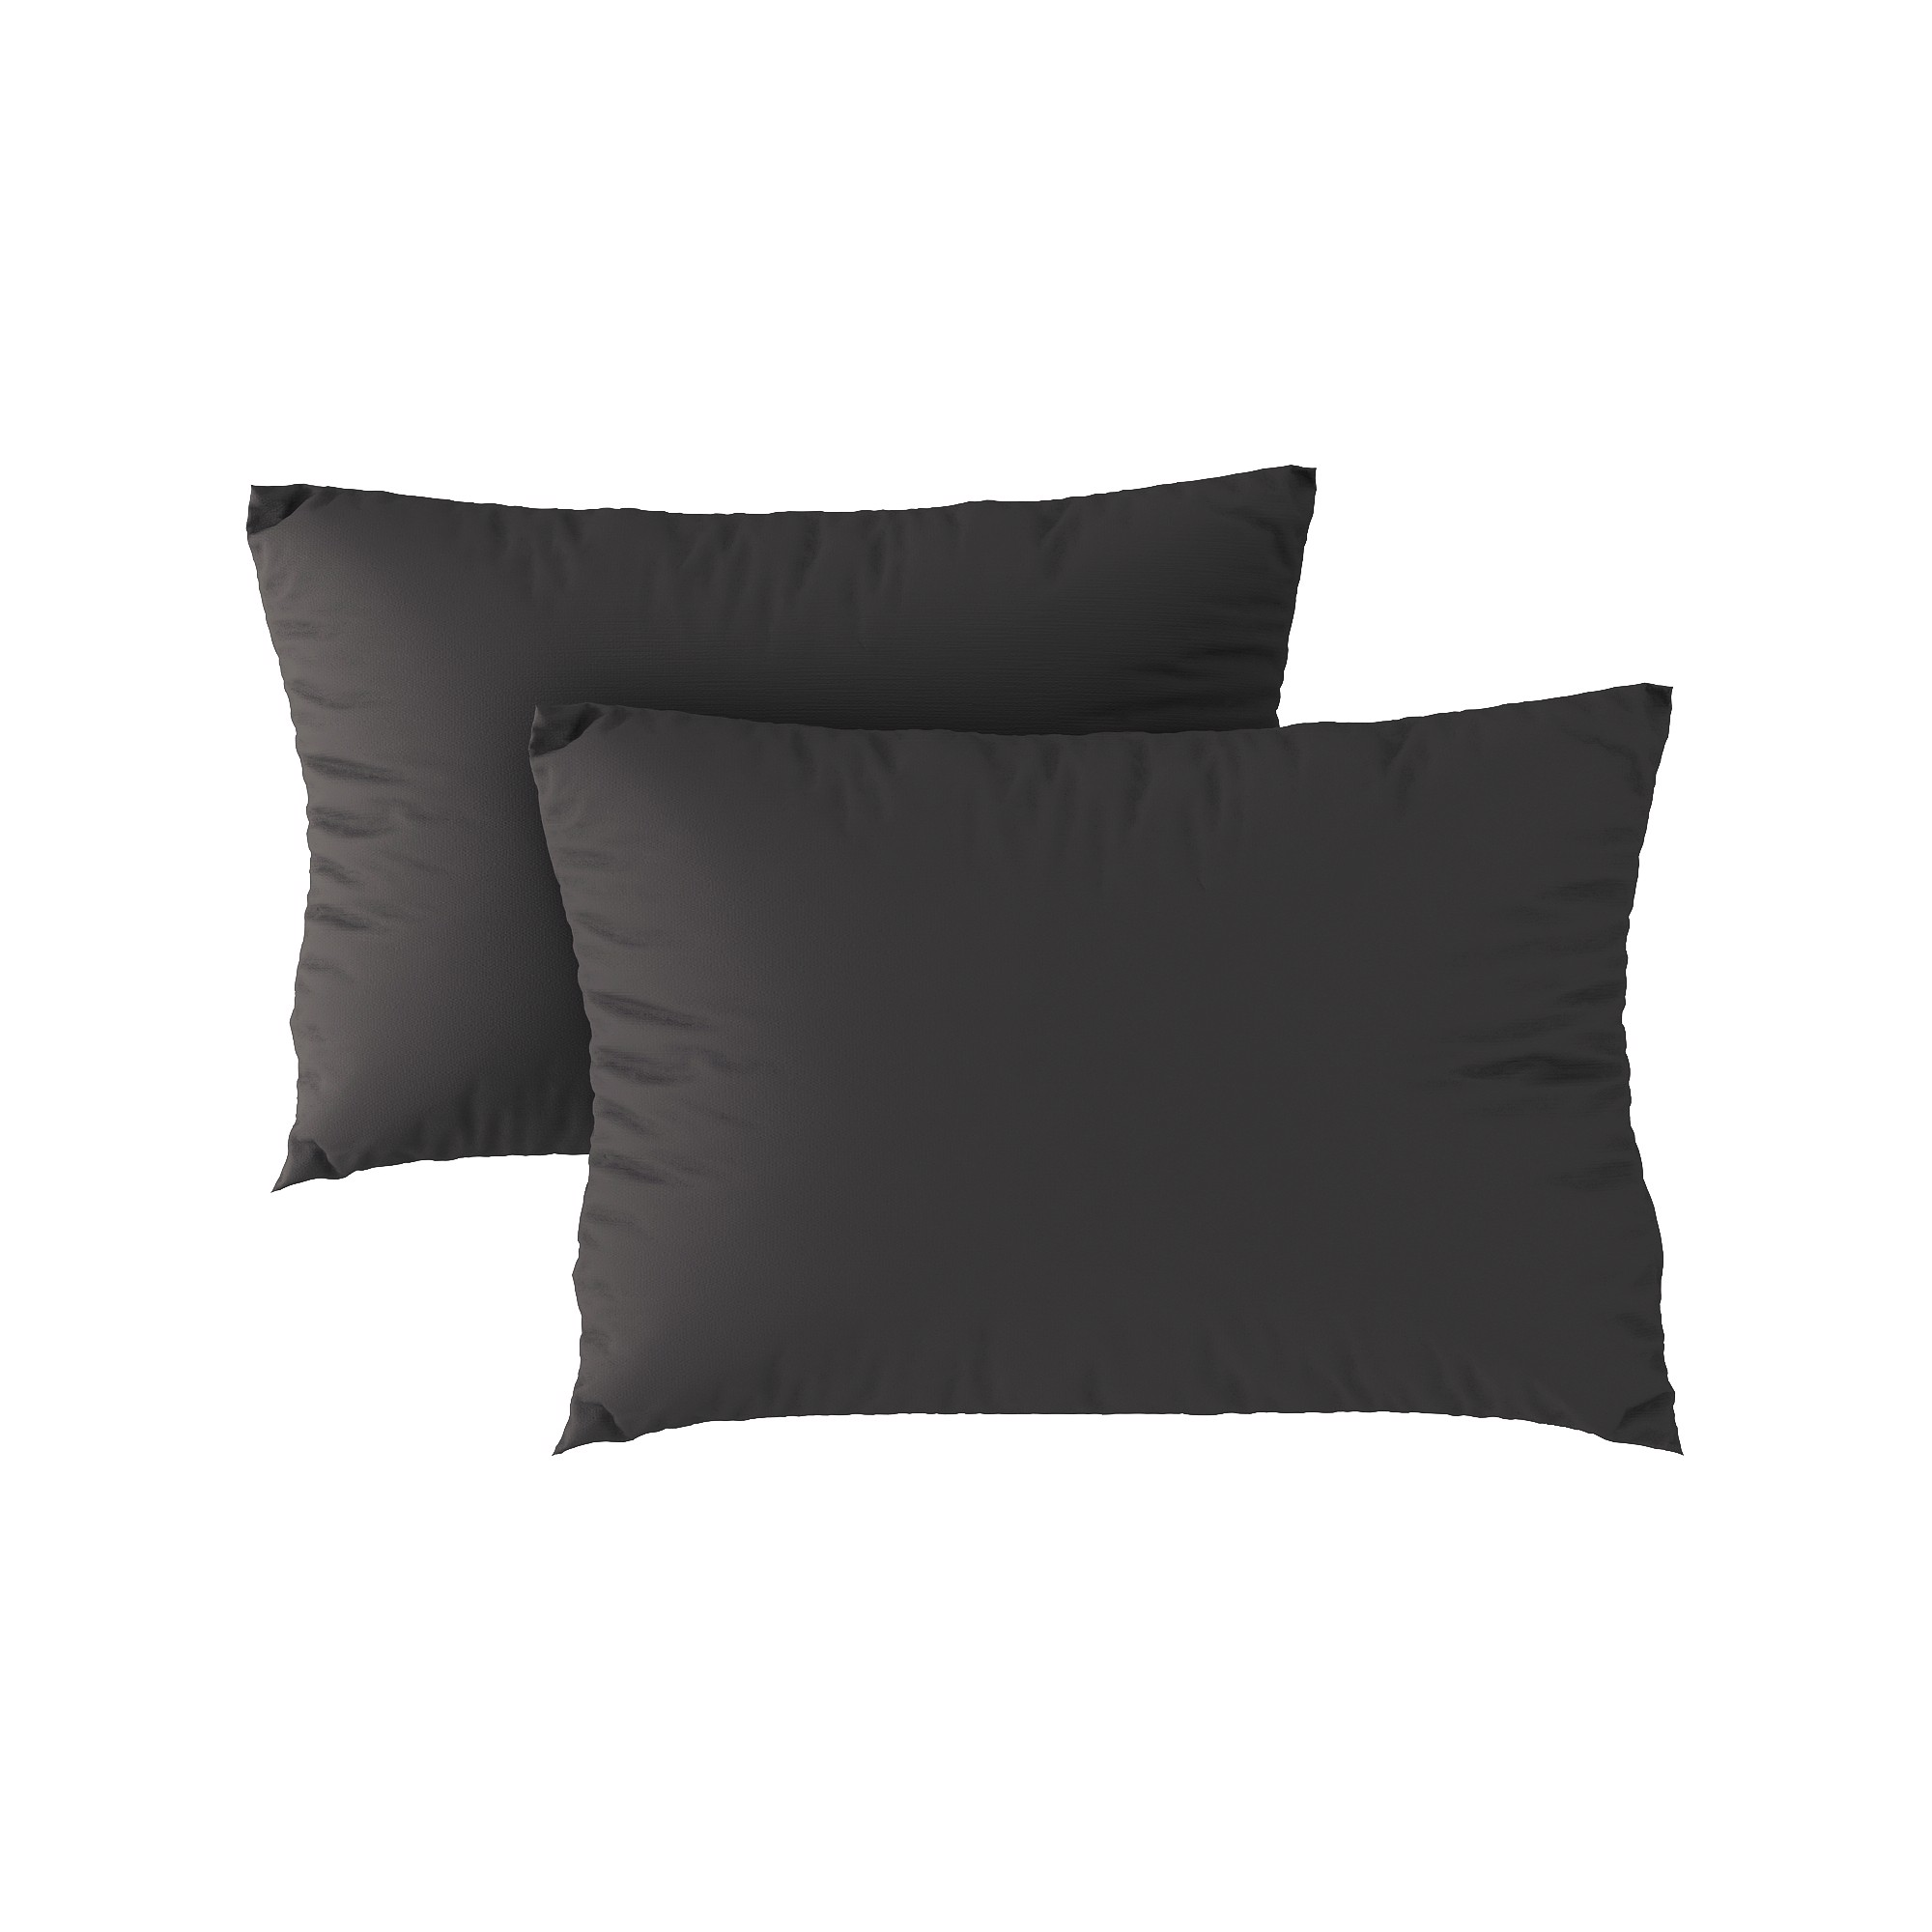 Standard pillow case 23 Dark grey (2pcs)